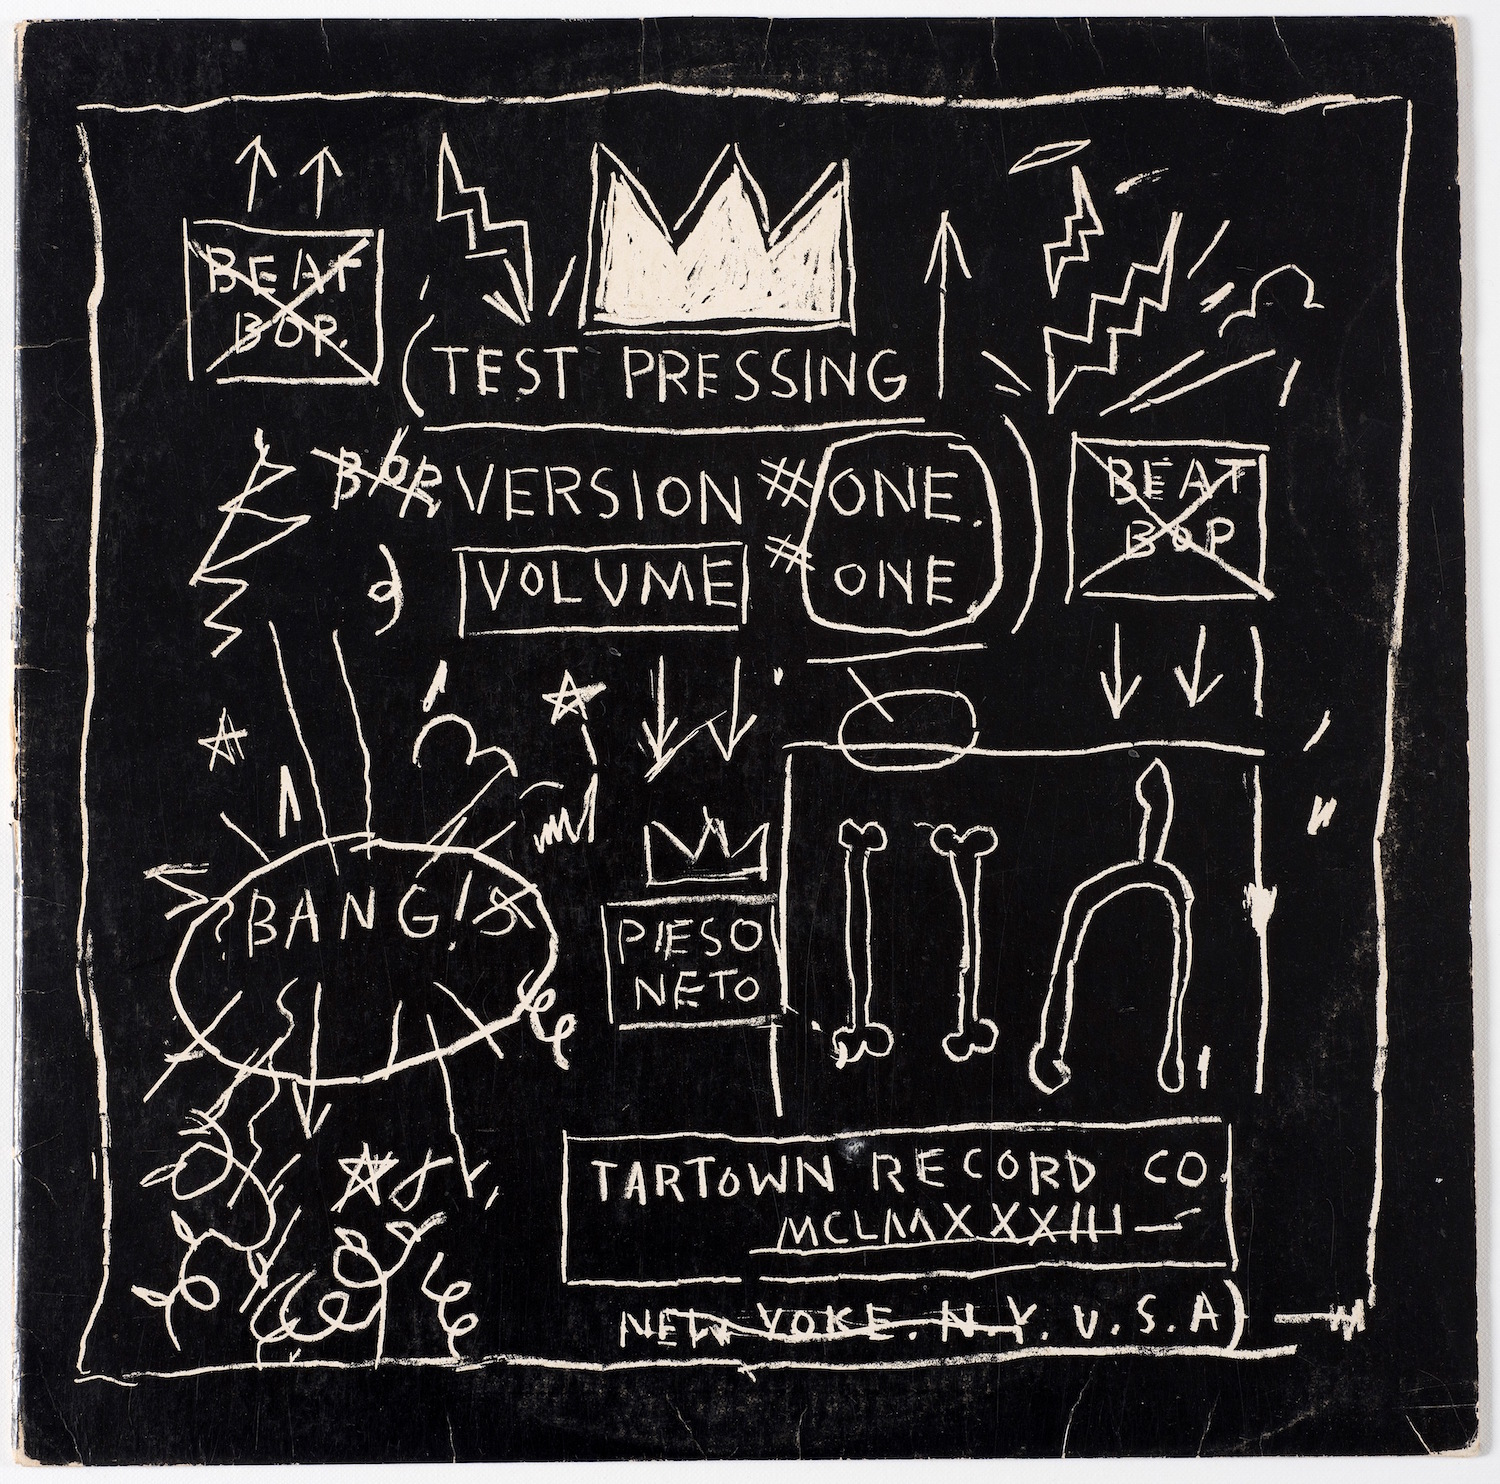 Rammellzee vs. K-Rob, produced and with cover artwork by Jean-Michel Basquiat, beat Bop record, 1983, Courtesy Jennifer Von Holstein